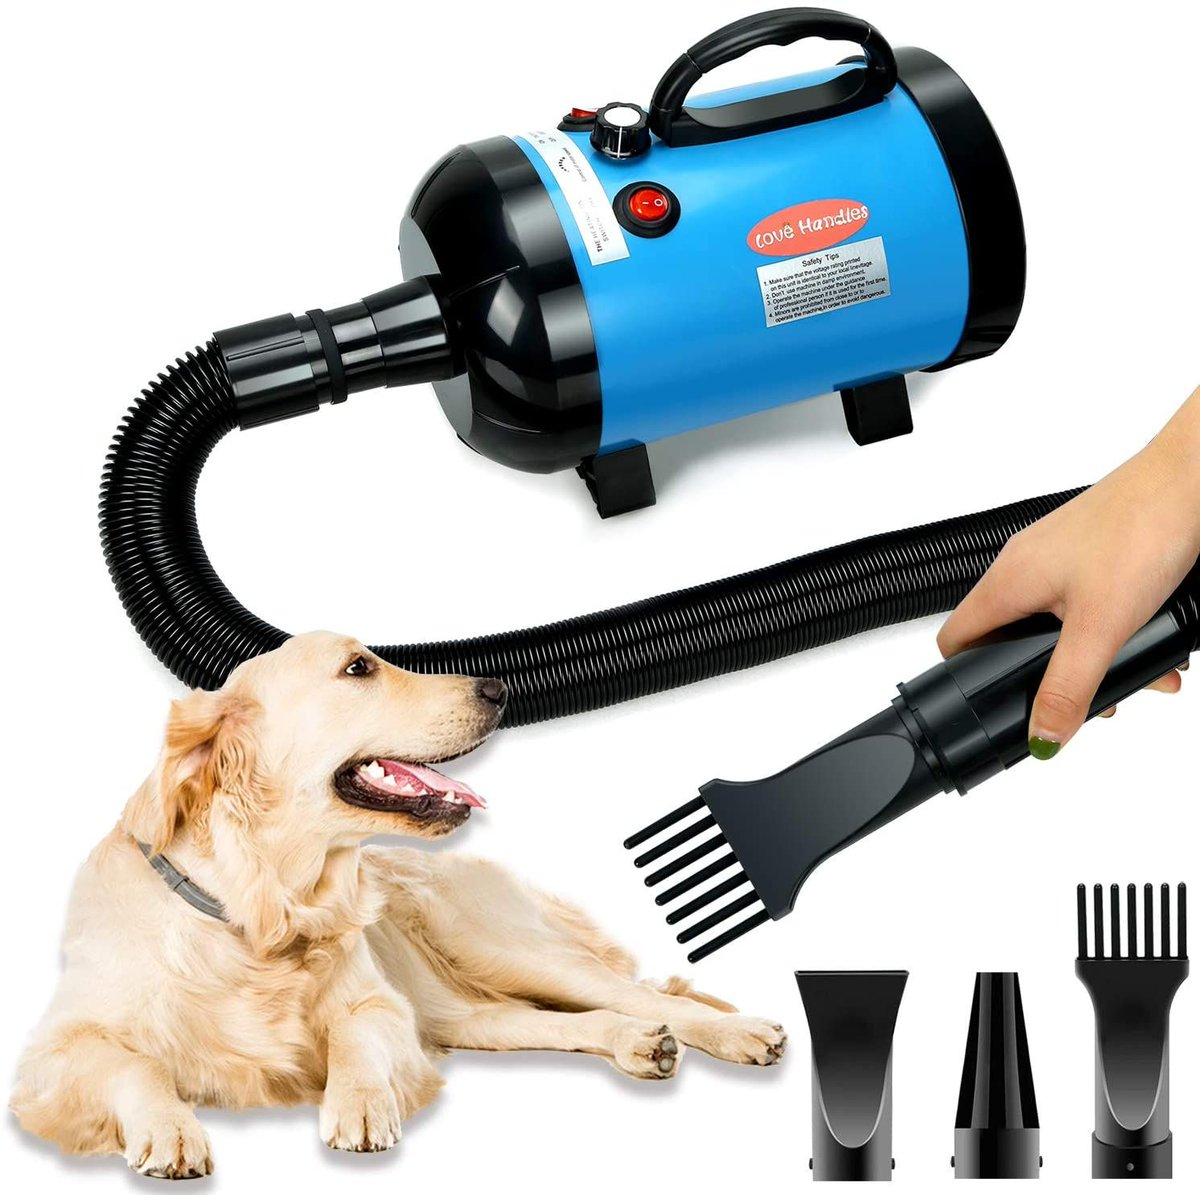 ad: $54 (50% off)  Pet Hair Dryer  use code 96ZO6BIG at checkout  Link0 Link0